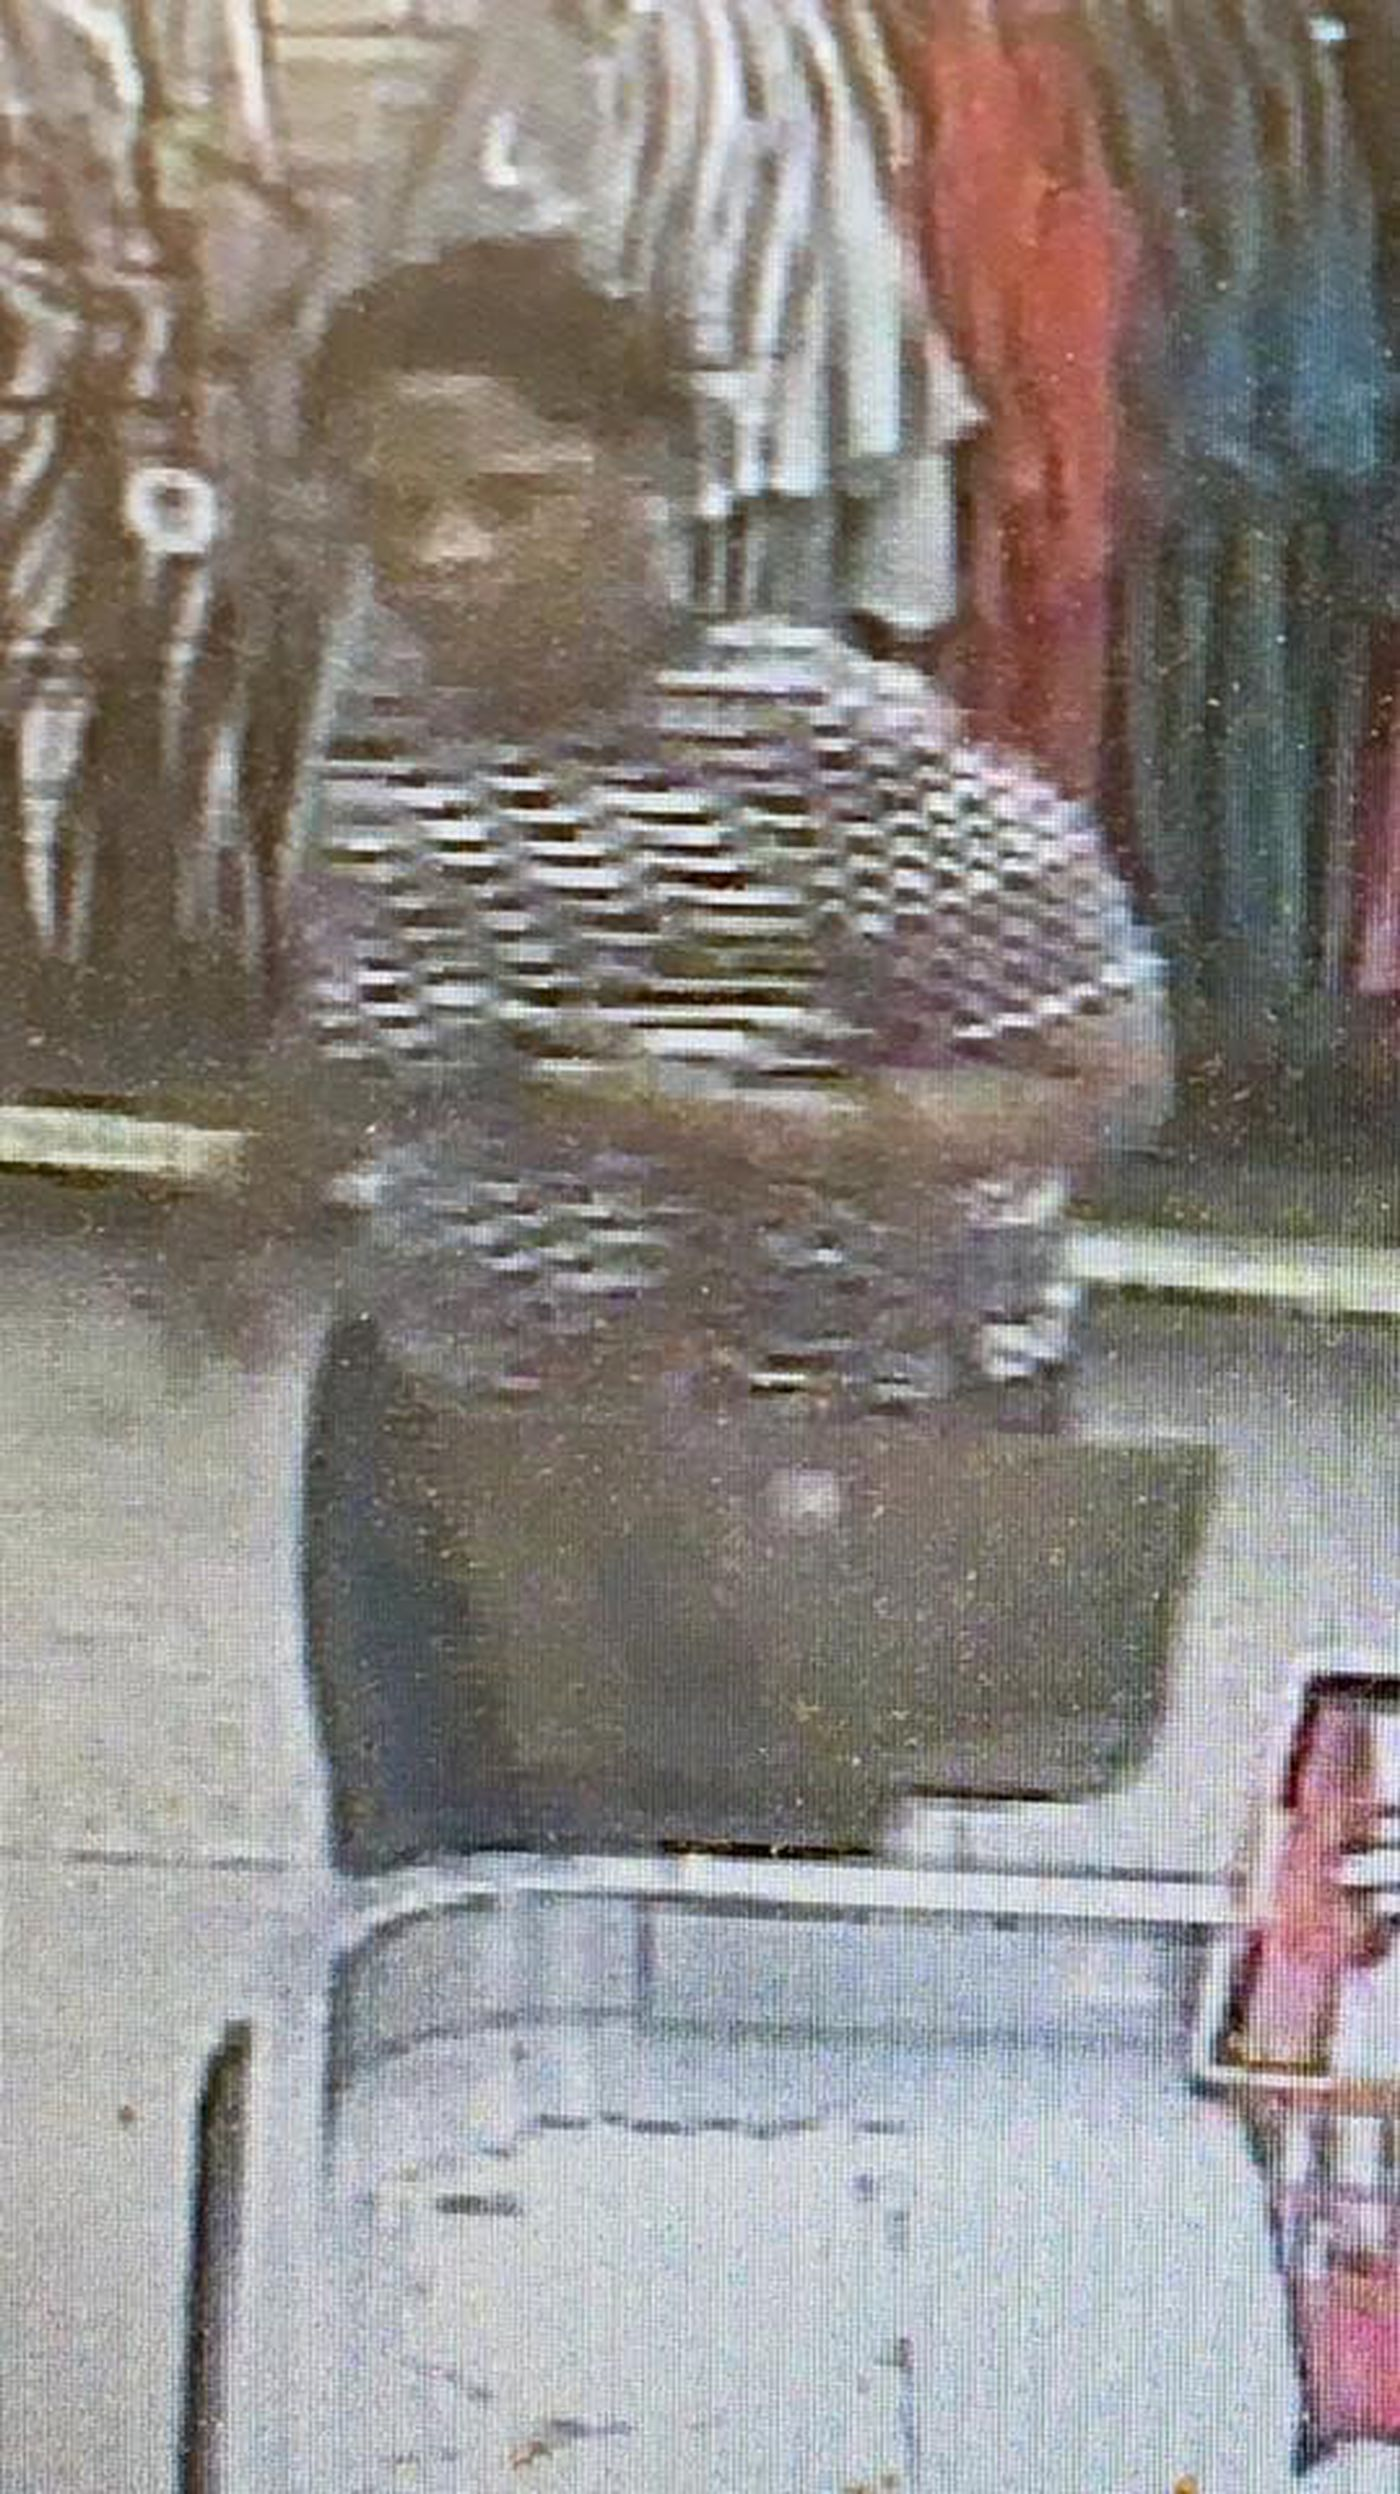 Suspect wanted in Eufaula for stealing elderly person's